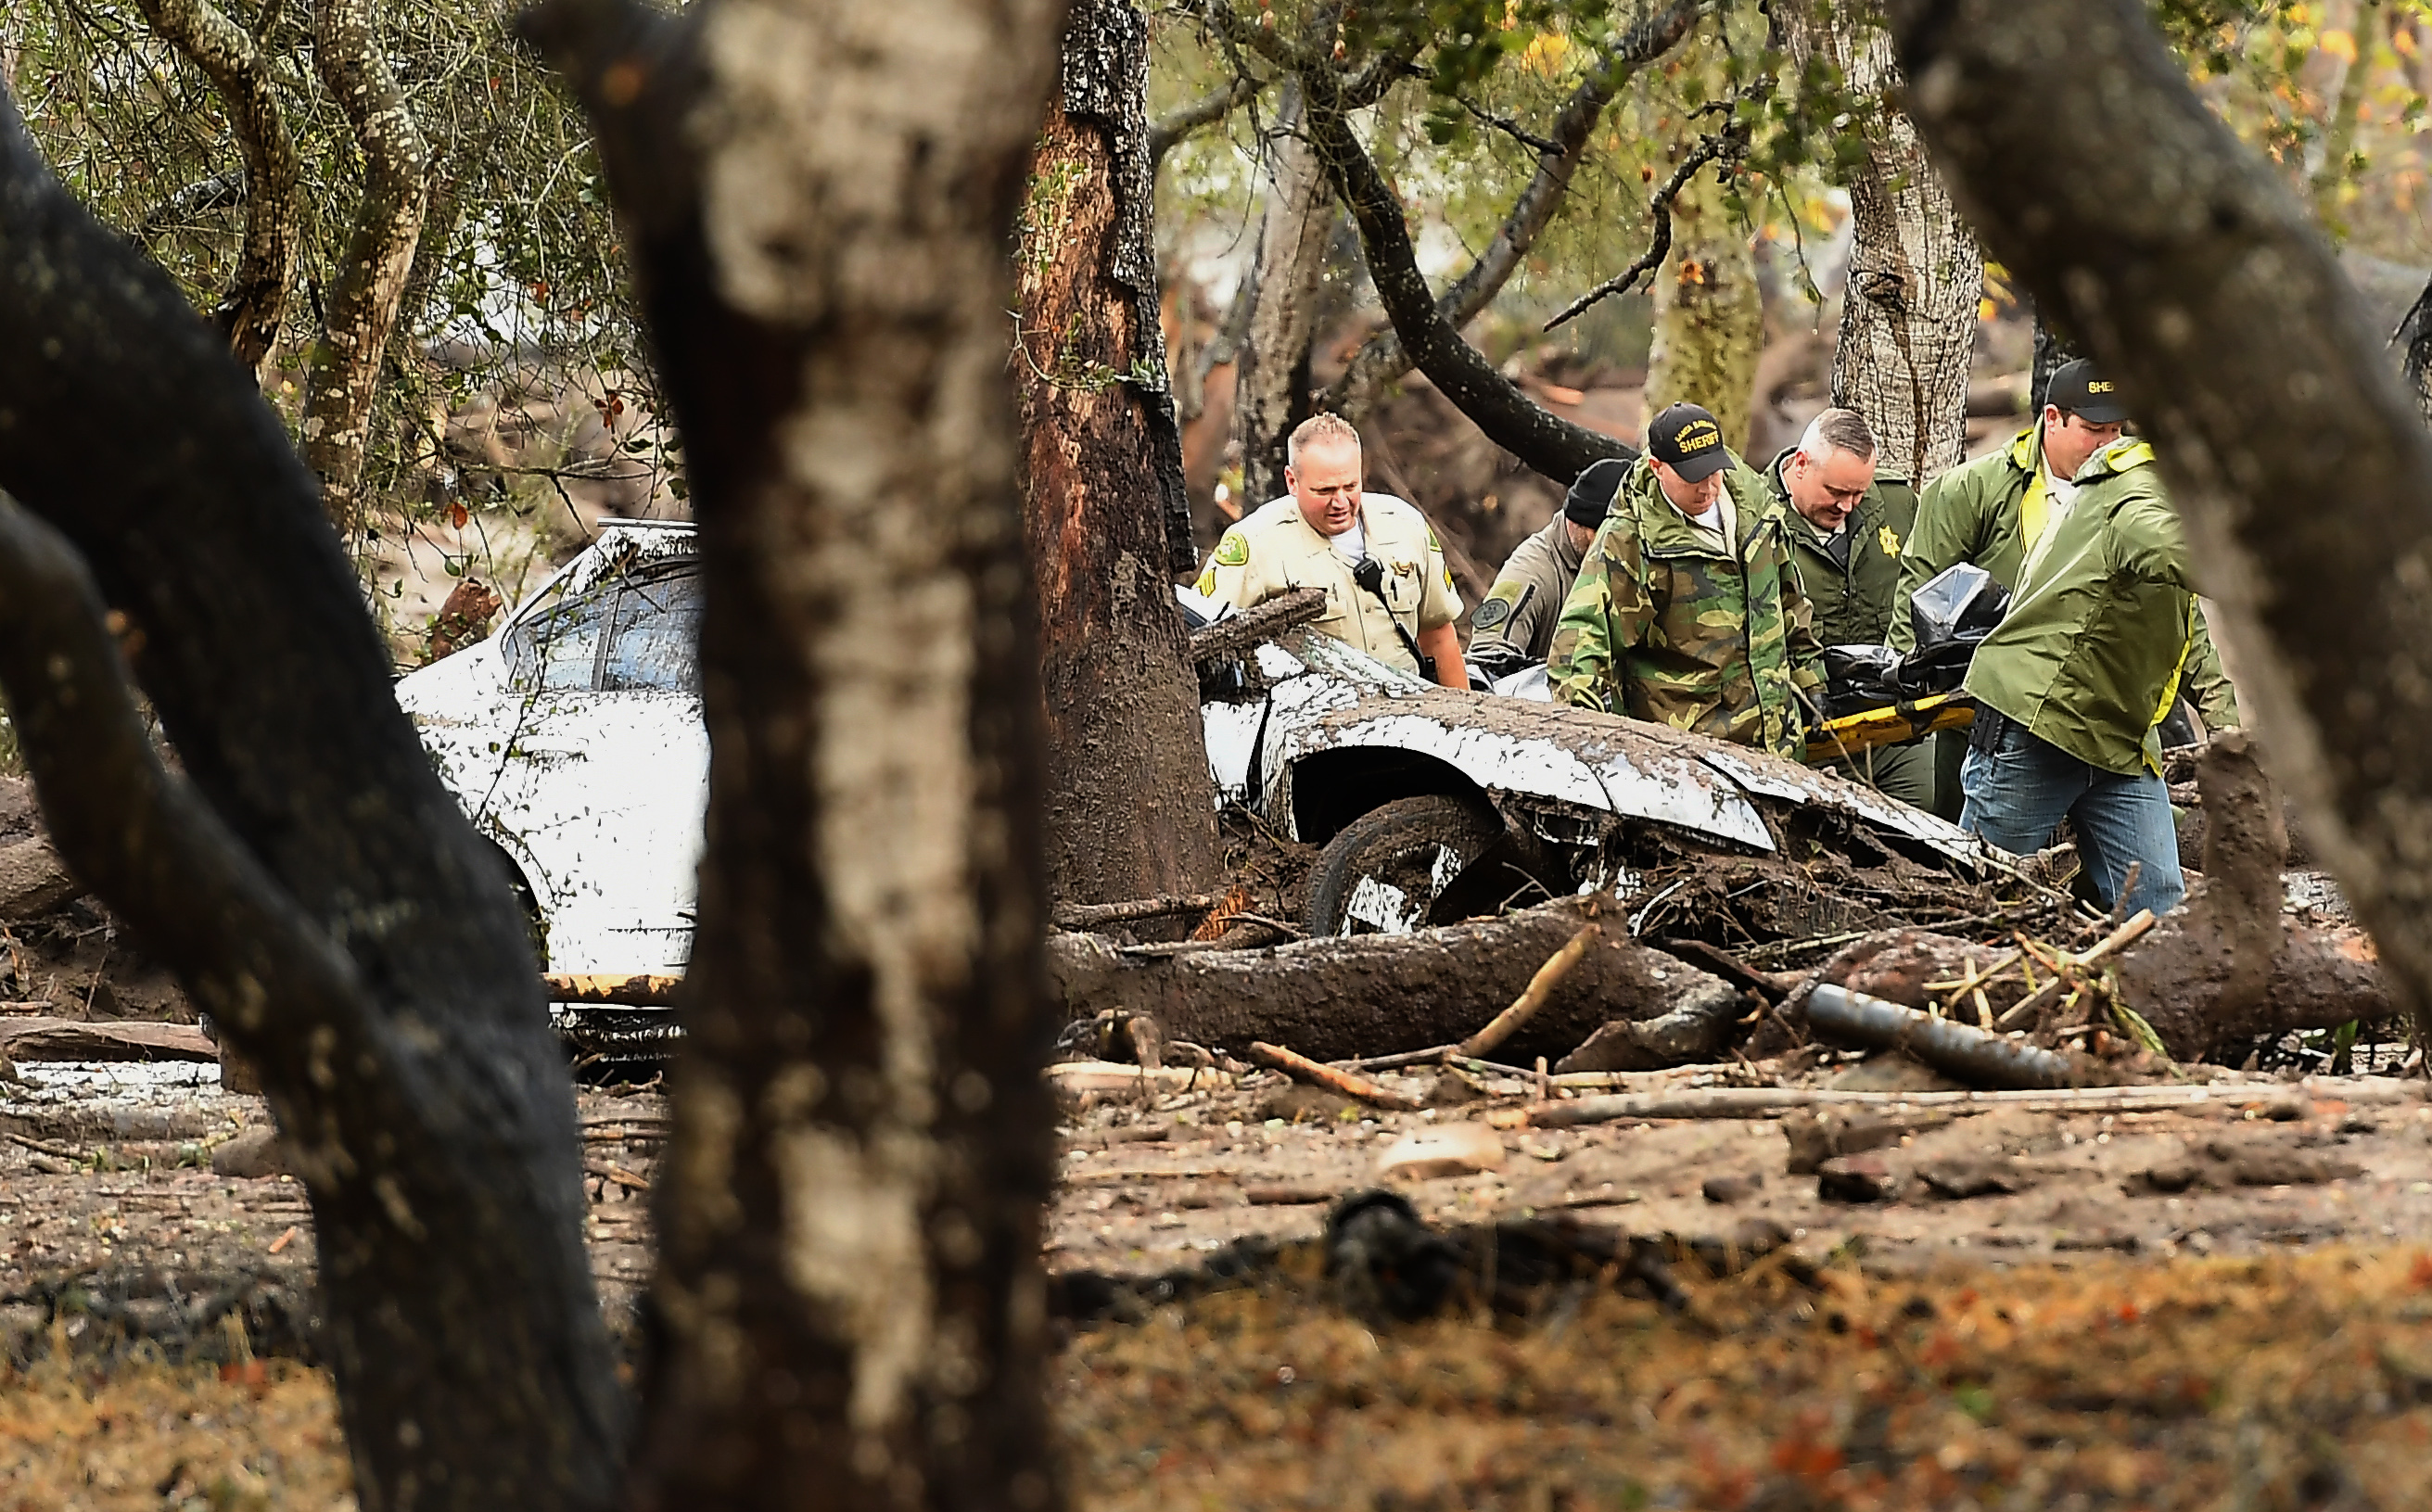 MONTECITO, CA - JANUARY 09: Sheriffs deputies carry a body from the debris near Hot Springs Road in Montecito after a major storm hit the burn area Tuesday January 9, 2018 in Montecito, California.